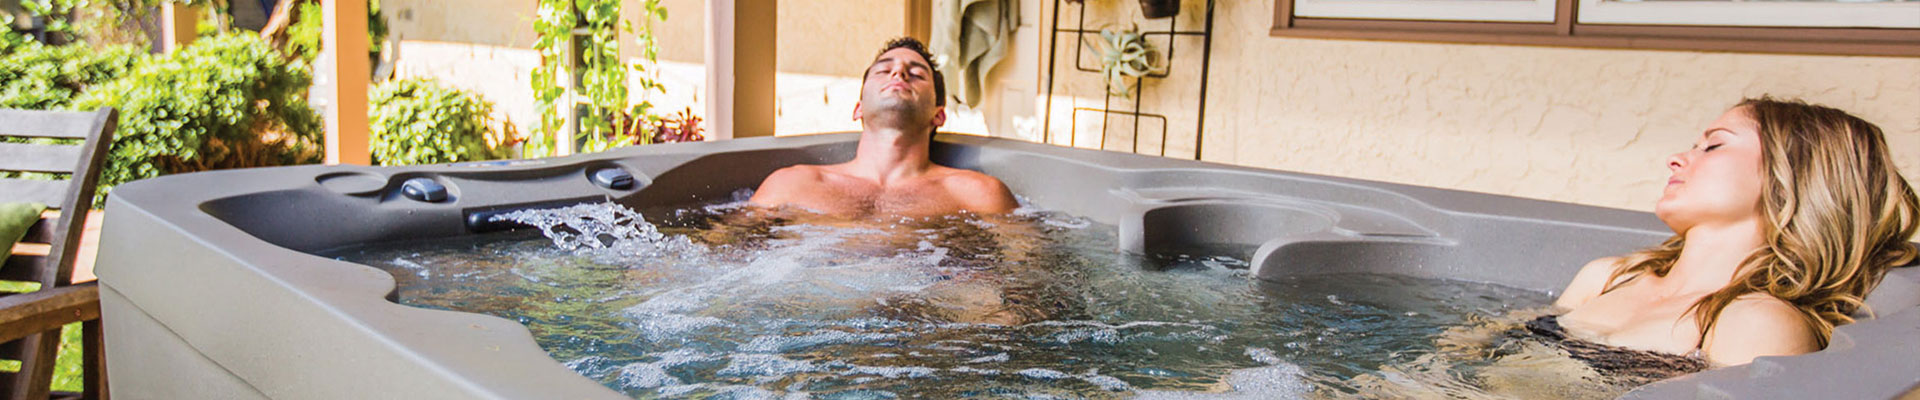 Minneapolis Swim Spas Dealer Selling Plug and Play Hot Tubs, Shares Tips for National Optimism Month